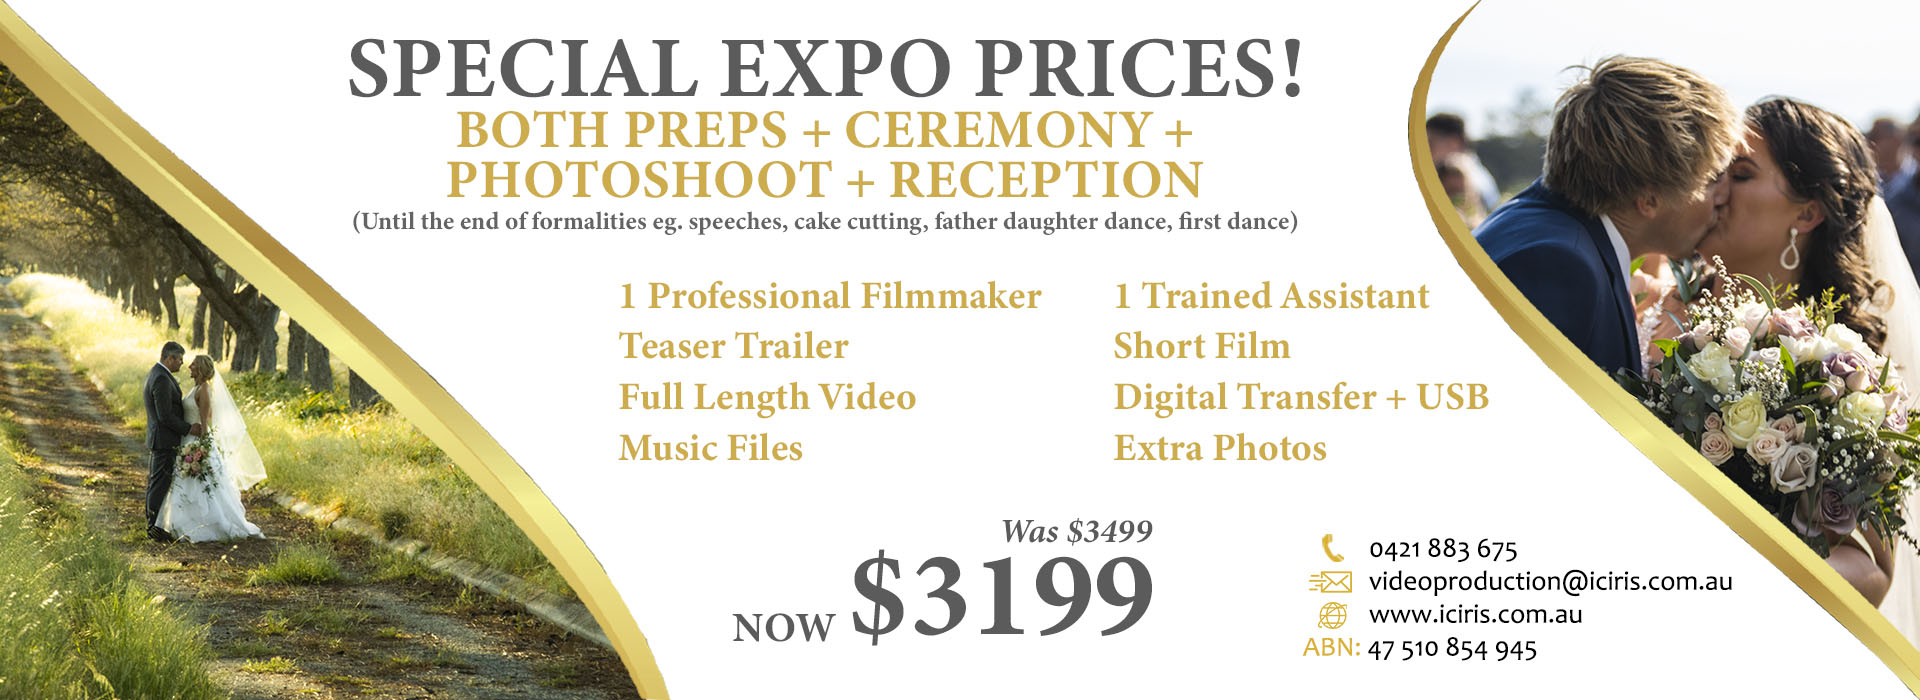 Expo Pricing Feb 2021 - Video